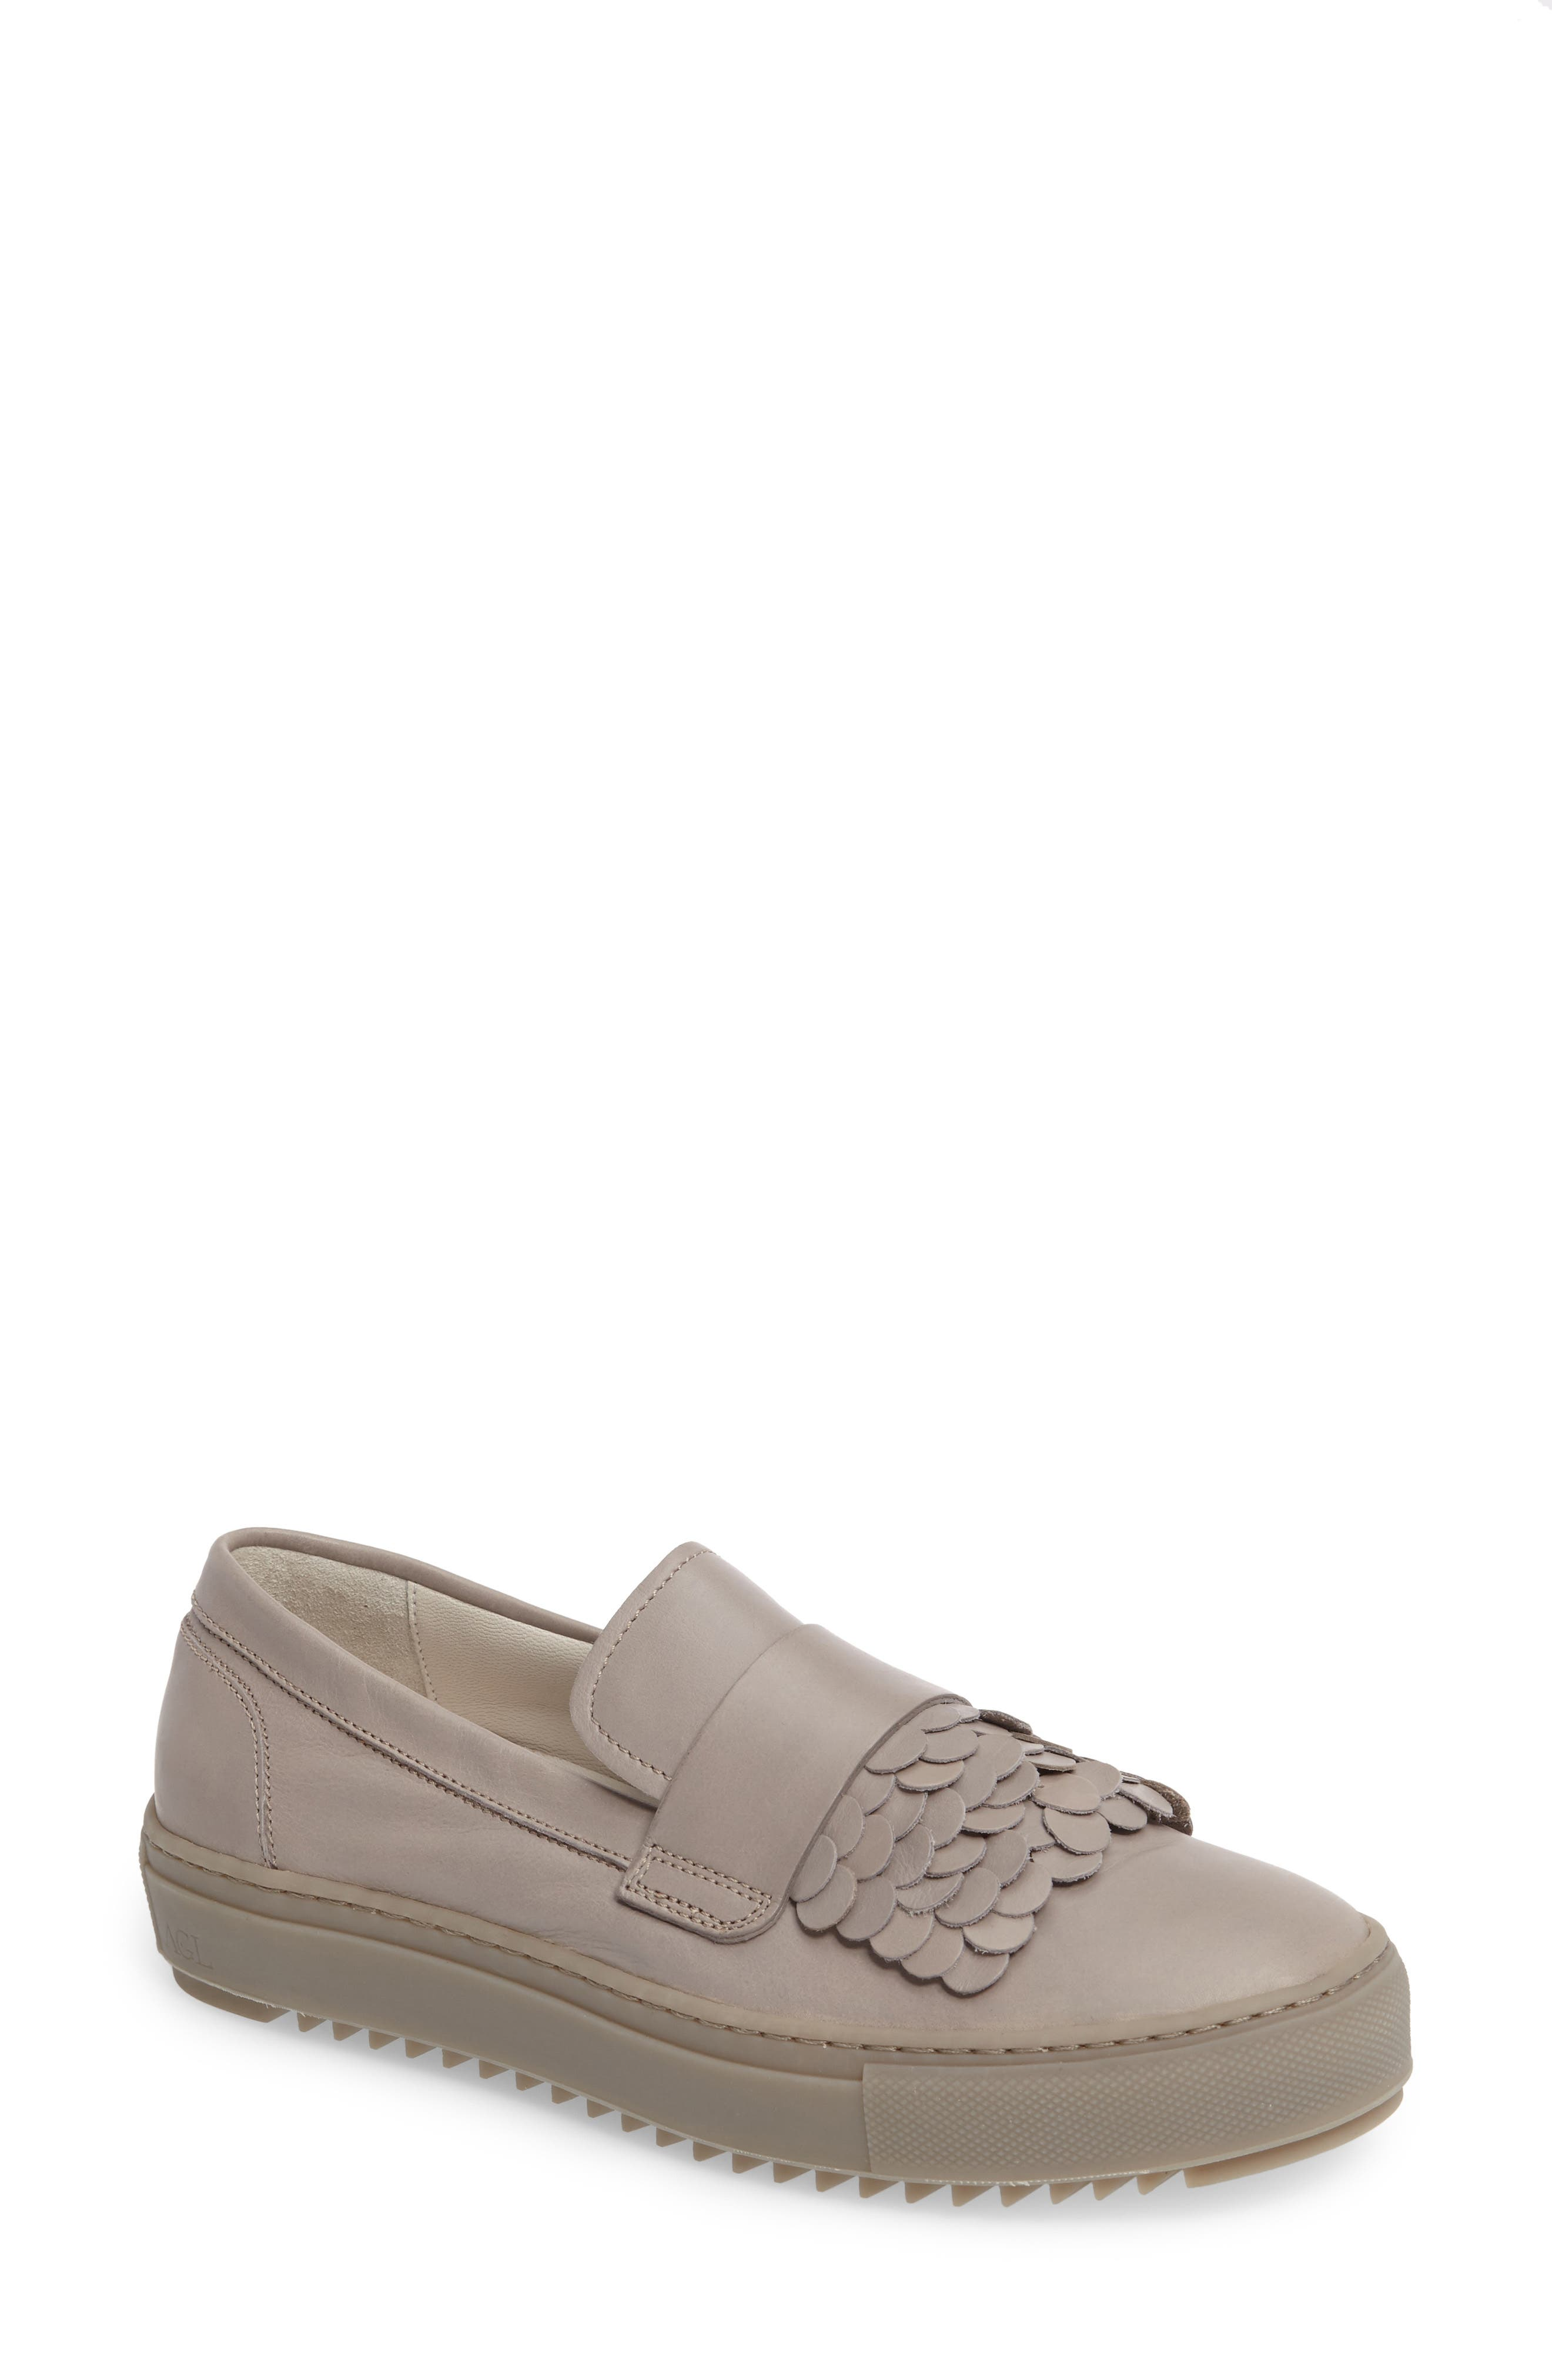 Paillette Skater Sneaker,                         Main,                         color, Taupe Leather